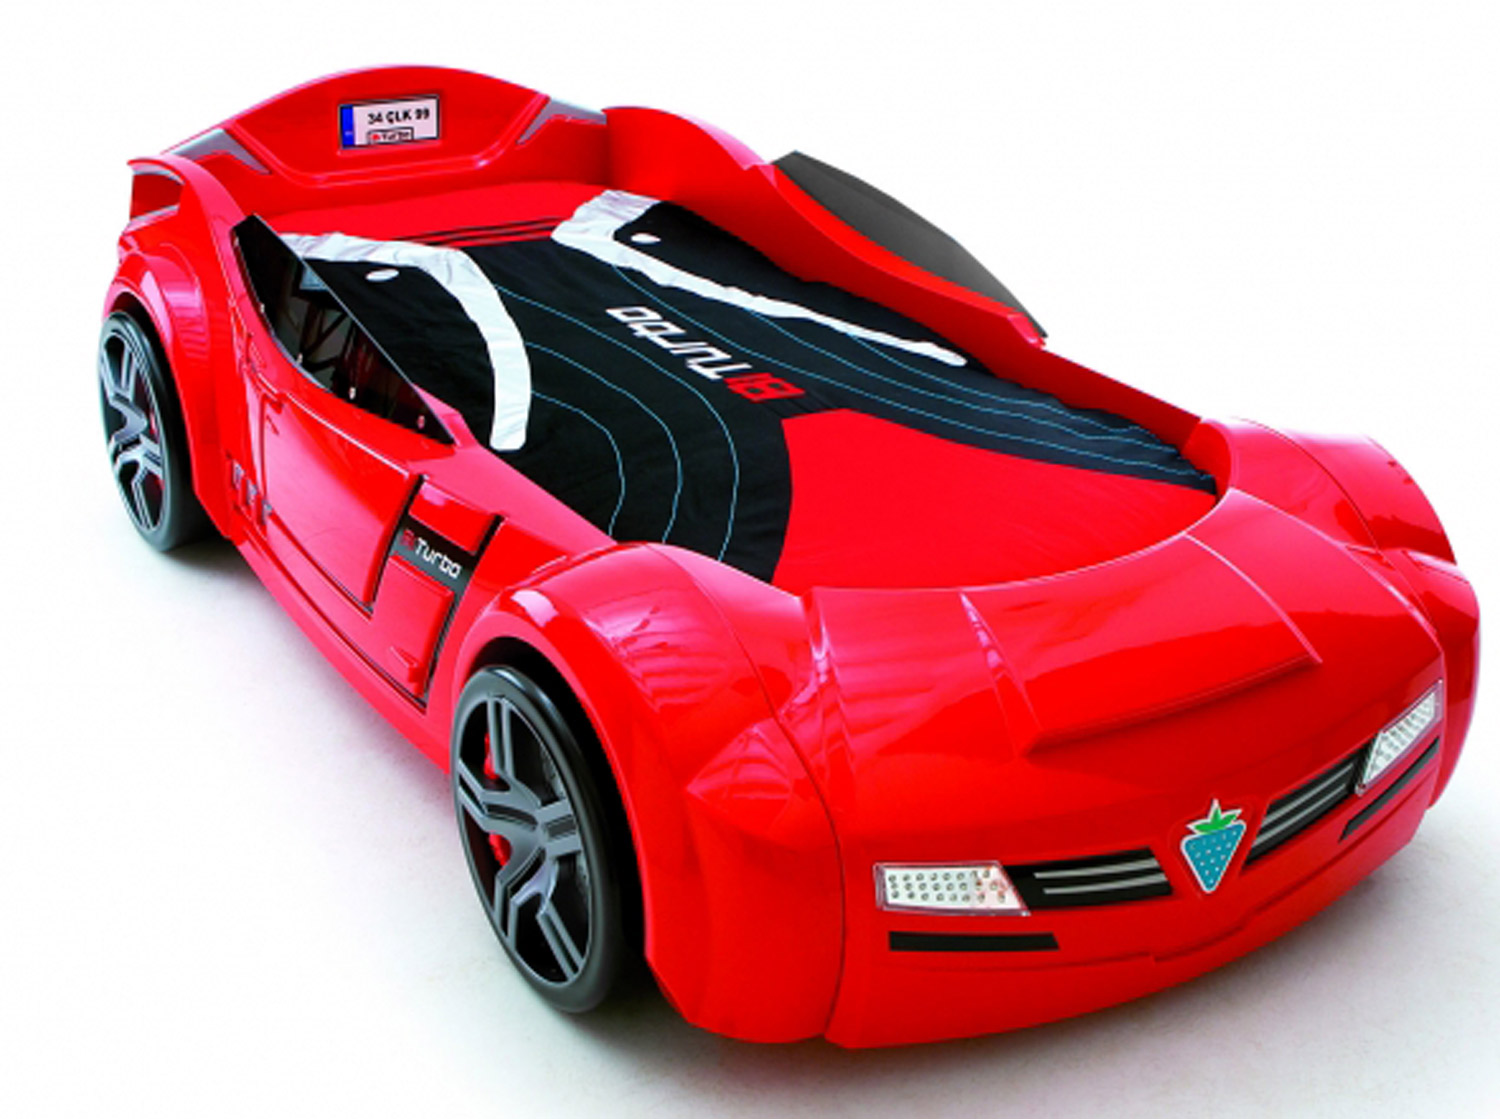 glossy red race car bed glossy red racing car bed  glossy red care bed for kids glossy red racing car bed for kids glossy red race car bed for toddlers glossy red racing car bed for toddlers red elegant race car bed red elegant racing bed inspiri